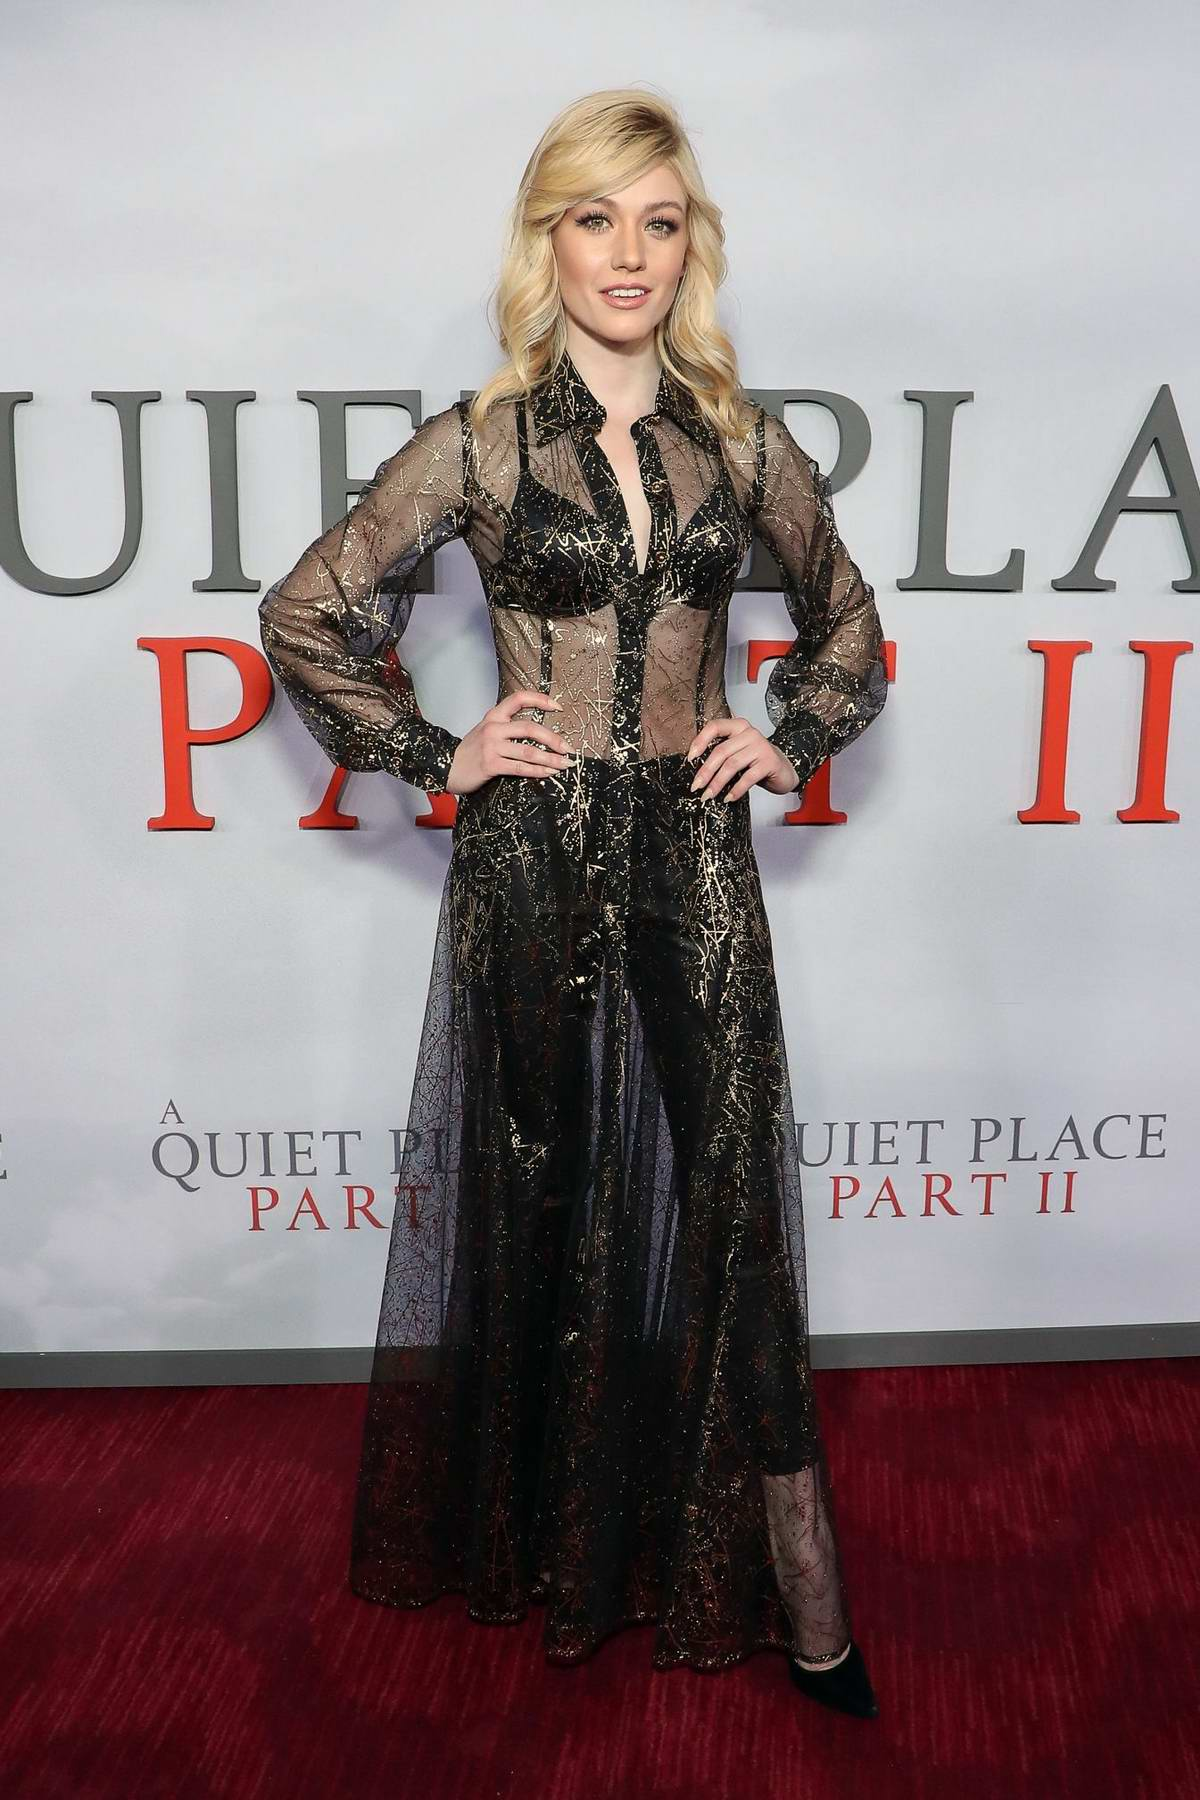 Katherine McNamara attends the Premiere of 'A Quiet Place Part II' in New York City